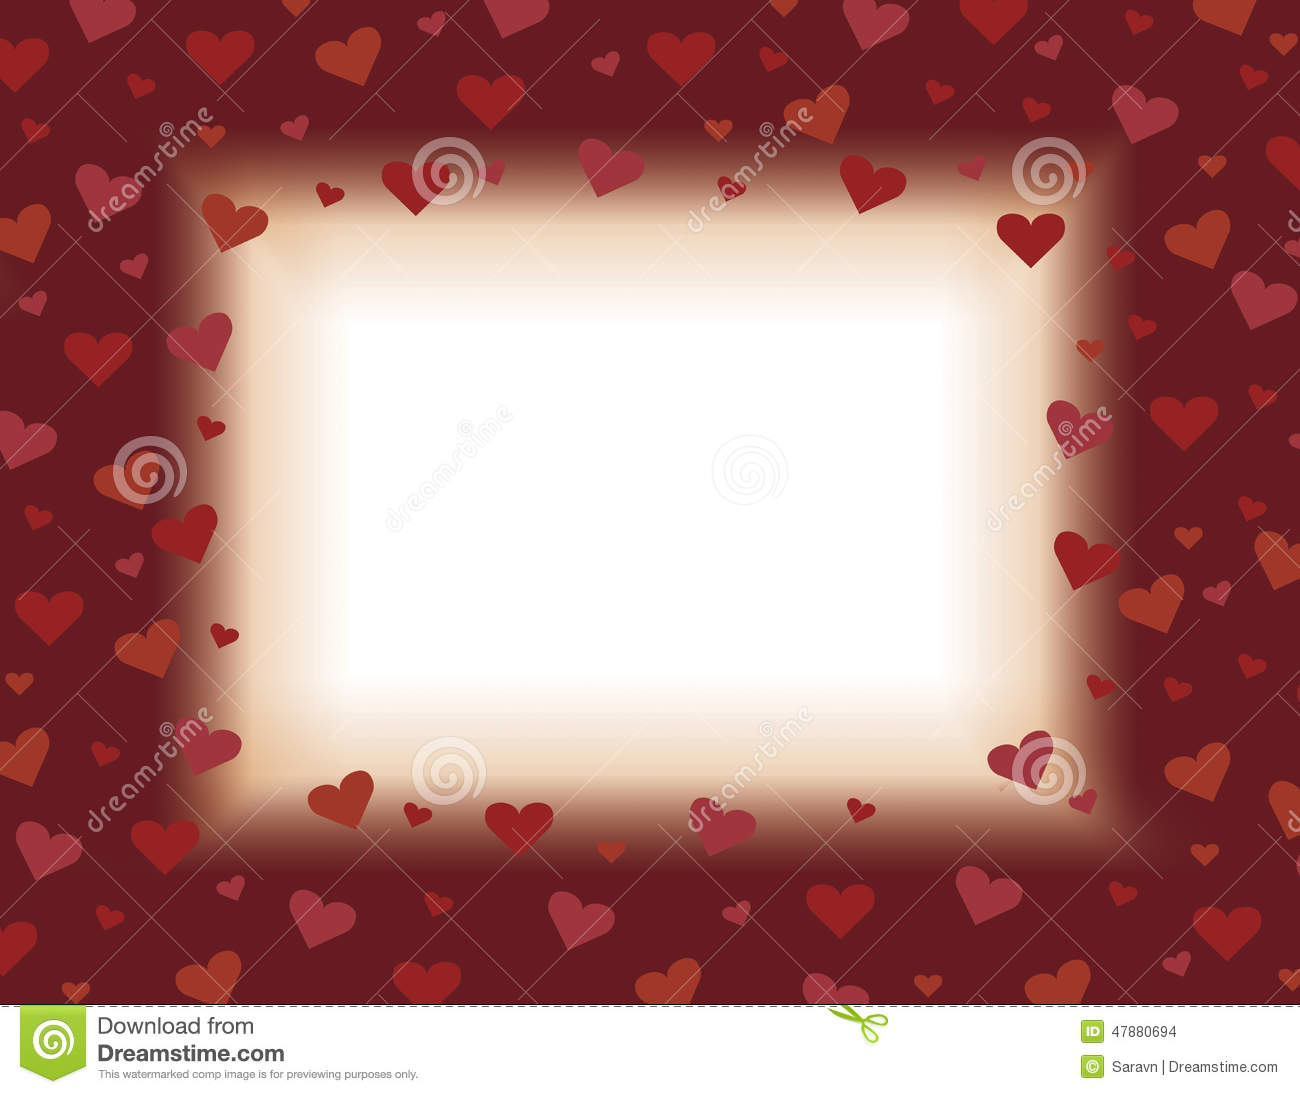 red and orange valentines day card background illustration